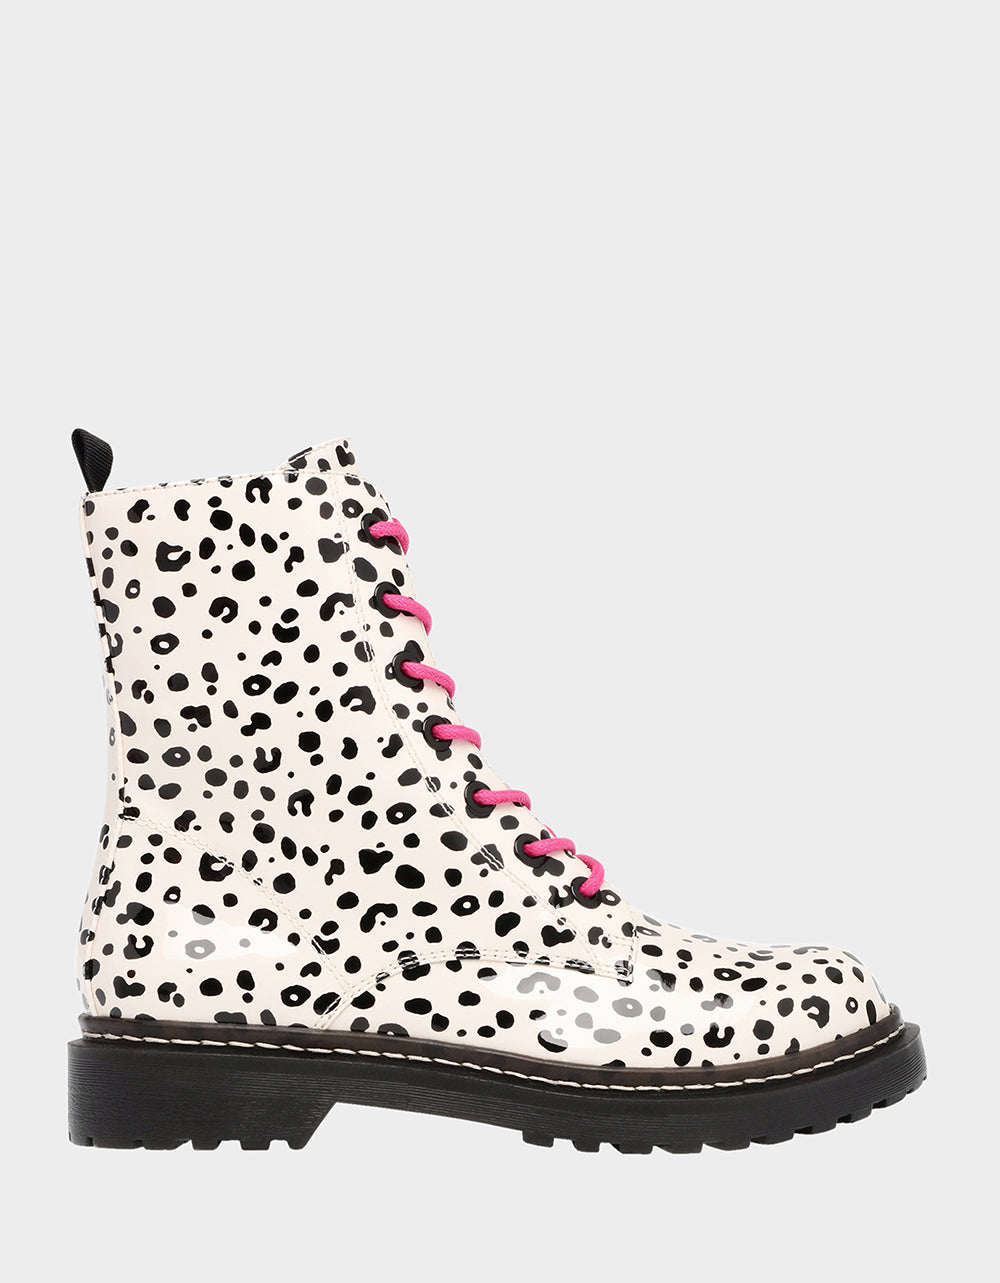 ELITE-BJ SNOW LEOP - SHOES - Betsey Johnson